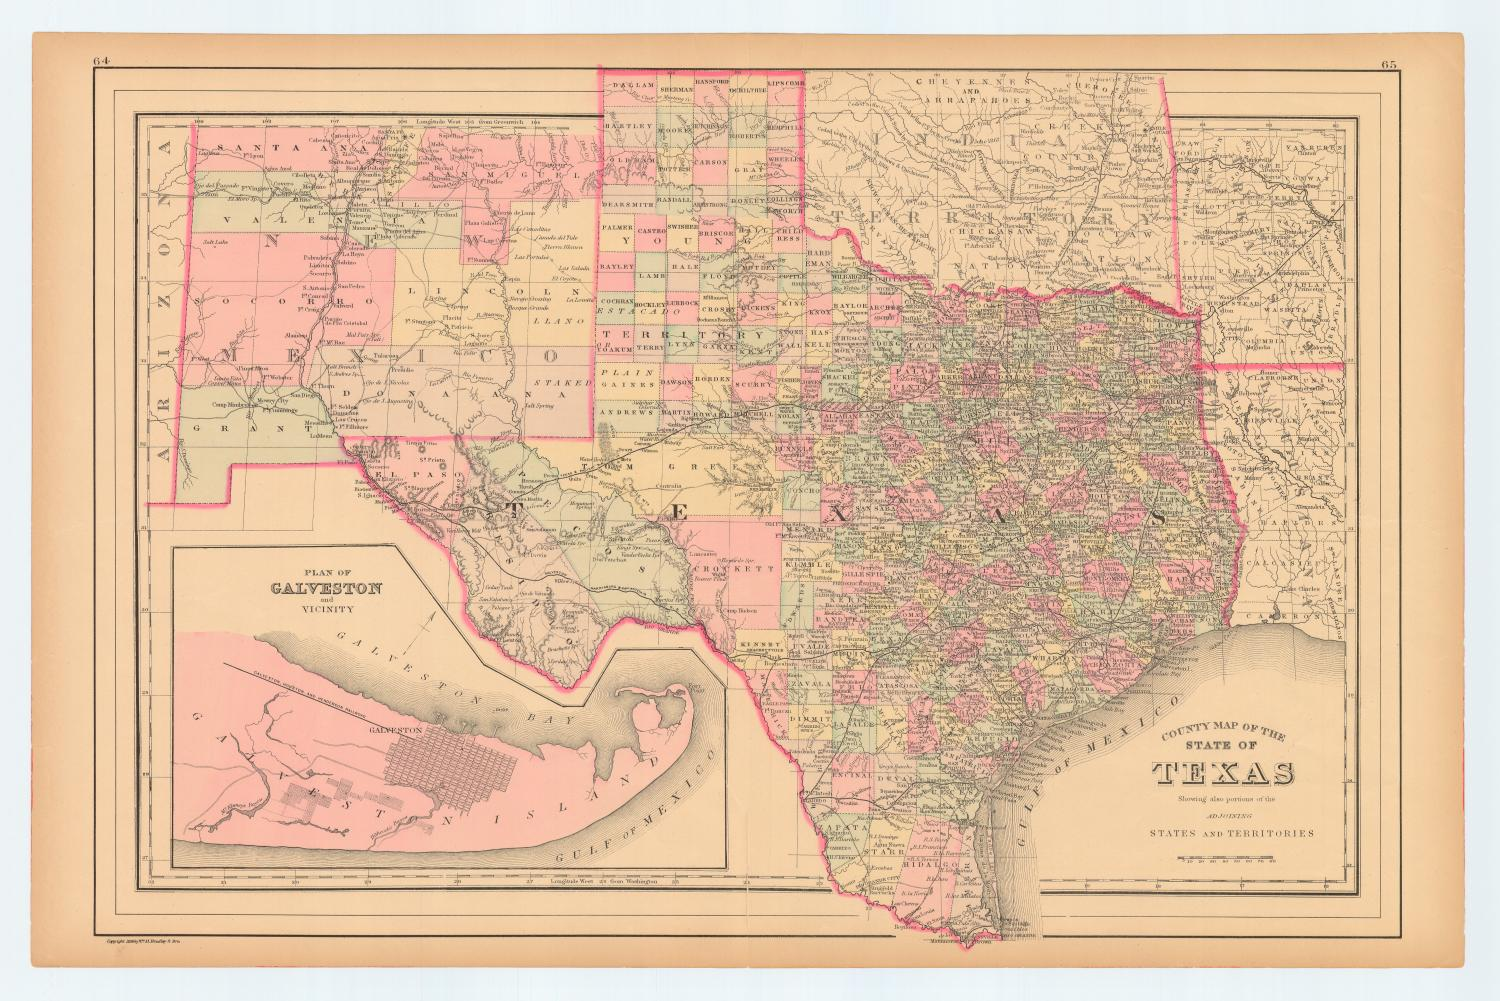 County Map Of The State Of Texas Showing Also Portions Of